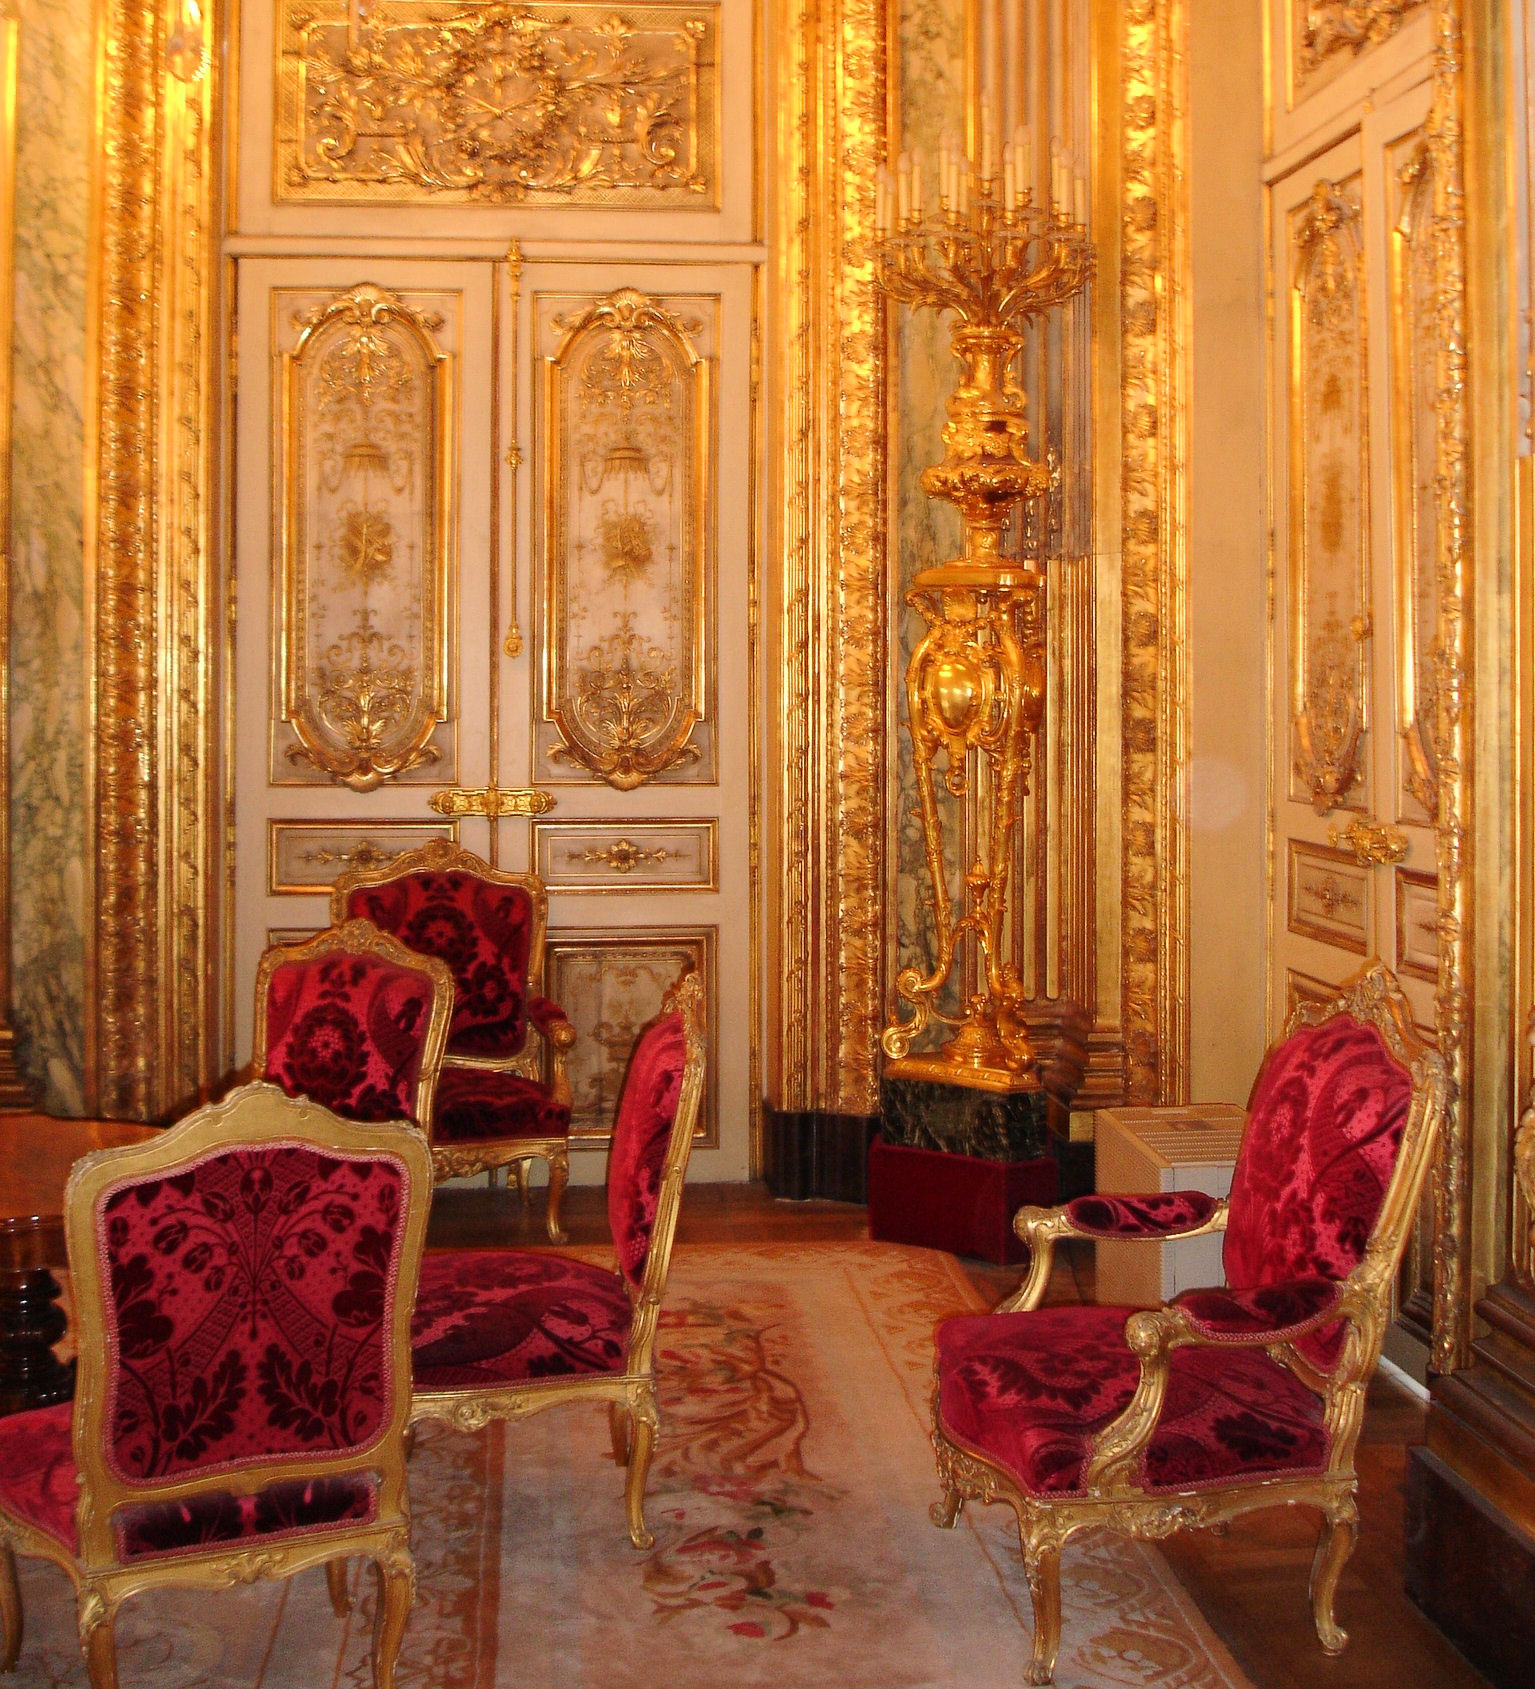 File louvre appartements napoleon iii grand for Salon du design